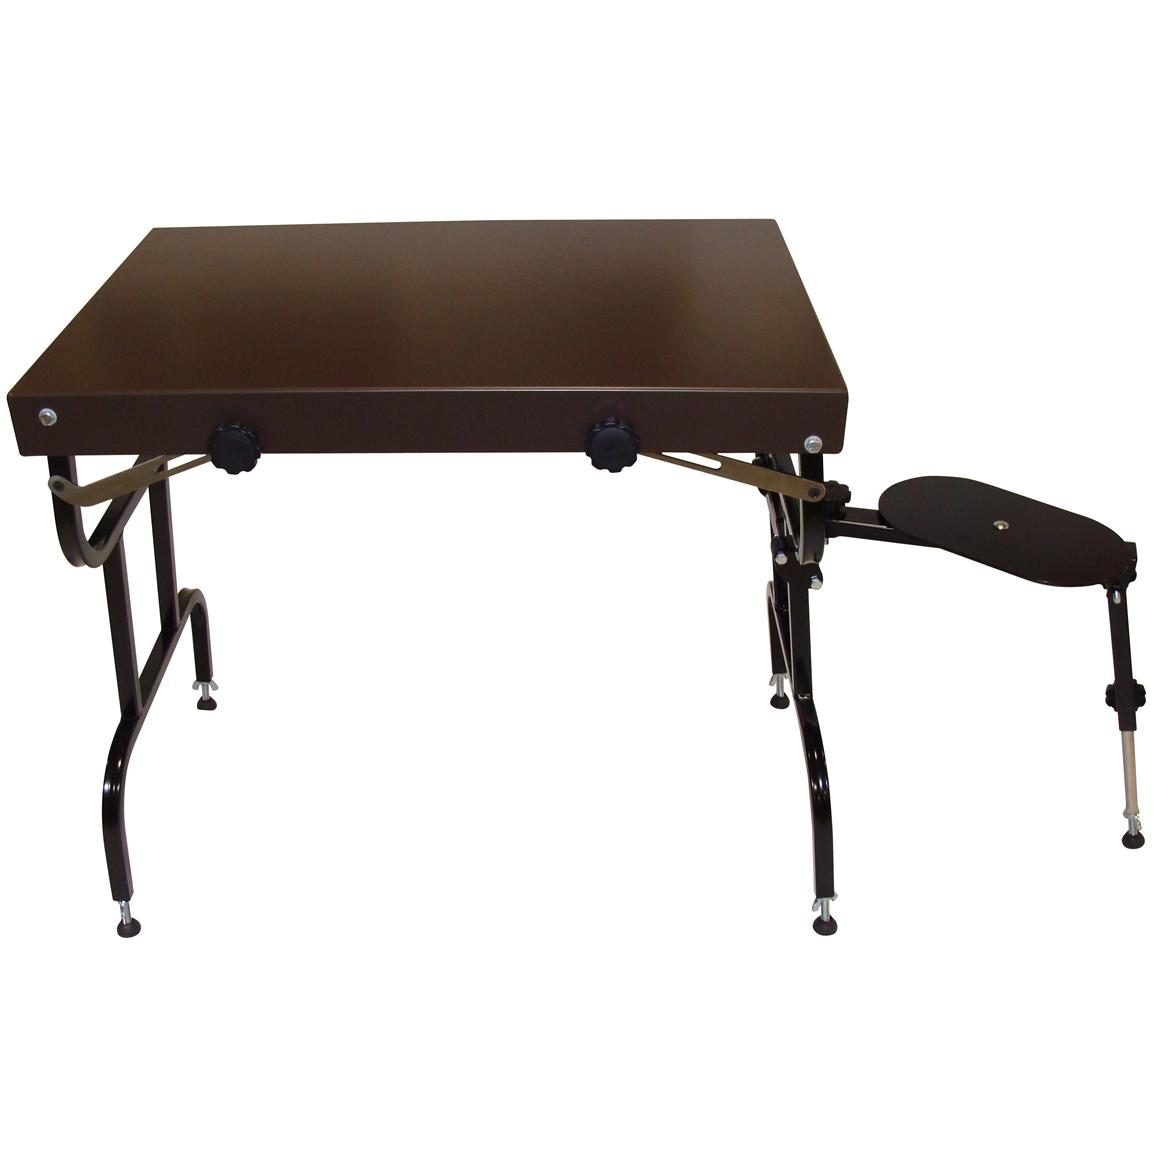 Benchmaster Shooting Table